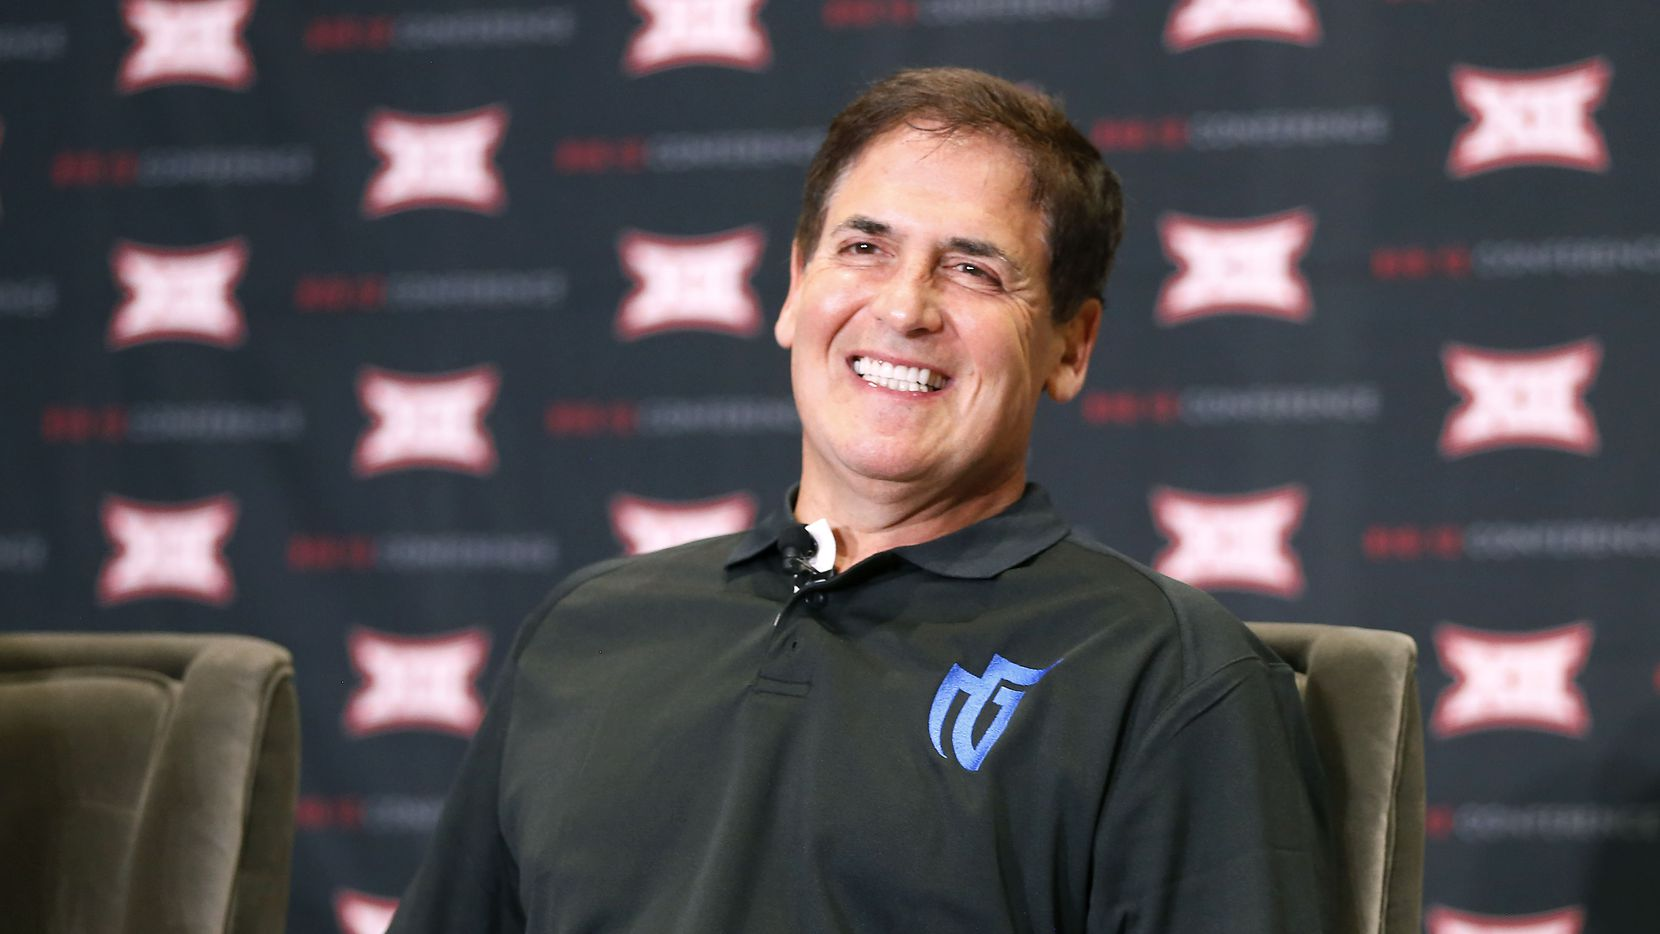 Mark Cuban, owner of the Dallas Mavericks and the NBA franchise's Mavs Gaming NBA 2K team, smiles during a panel discussion on eSports at the Big 12 Conference's state of college athletics forum at Statler Hotel in Dallas, Wednesday, May 23, 2018. (Jae S. Lee/The Dallas Morning News)